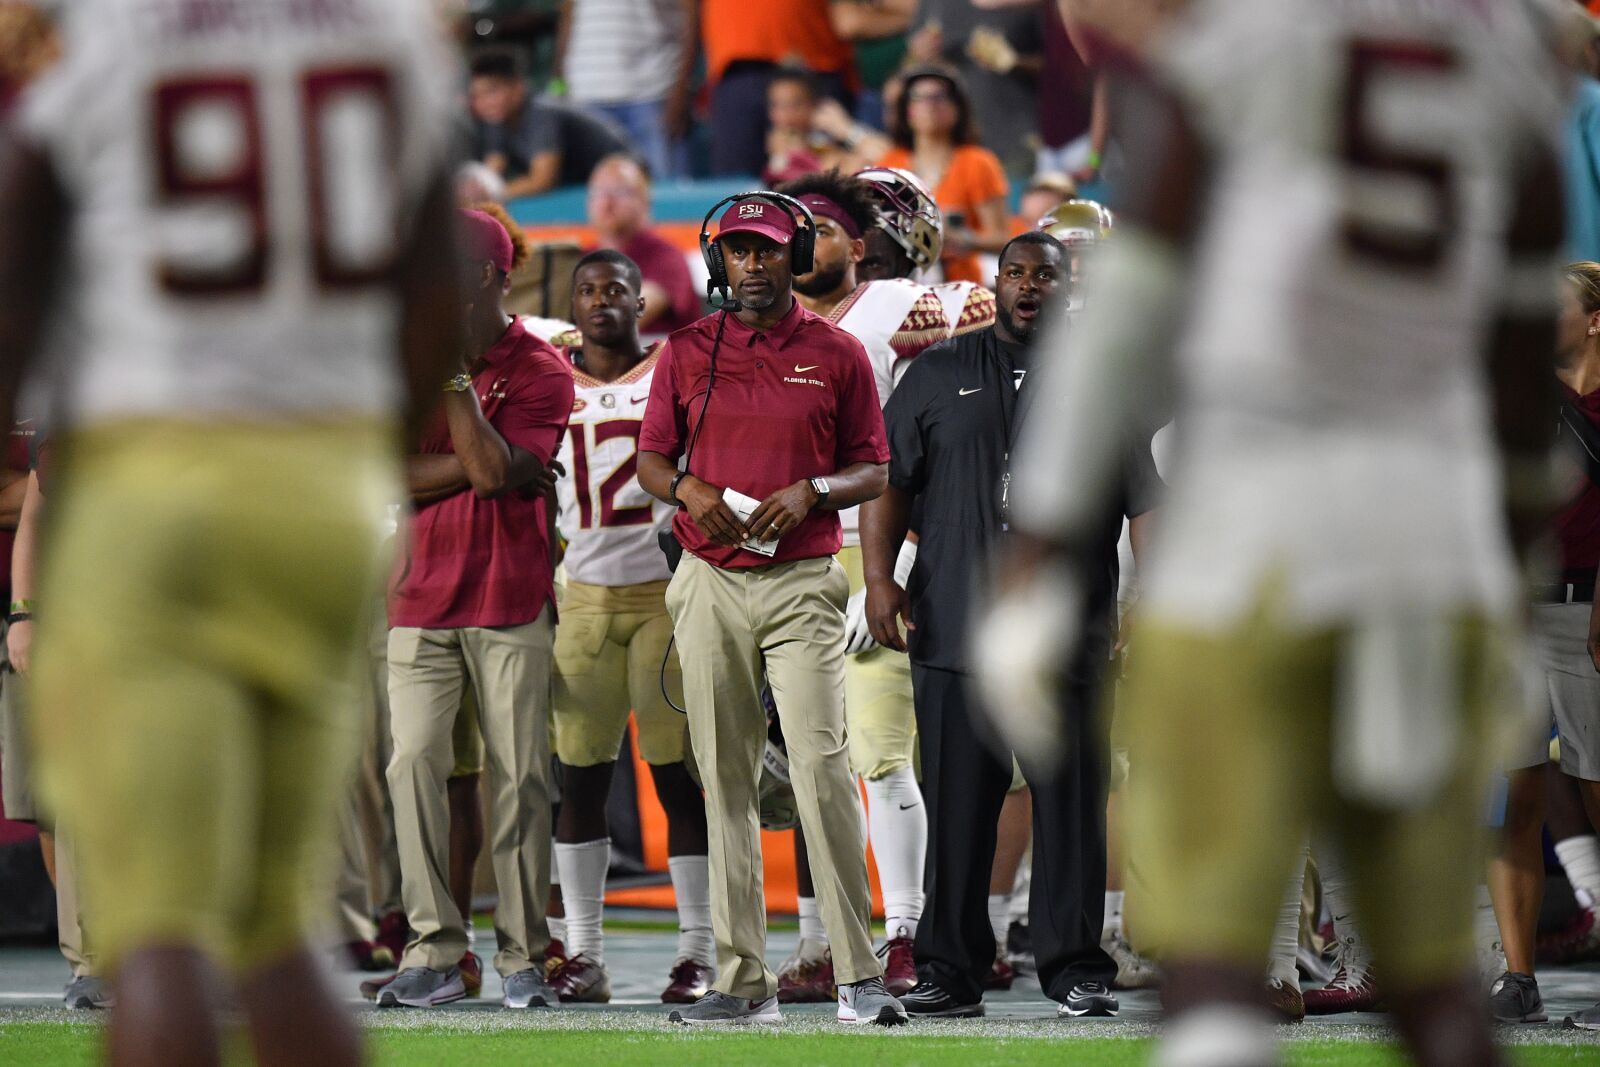 Fsu Football Are Noles In Danger Of Losing Top 2019 Recruit To Rivals